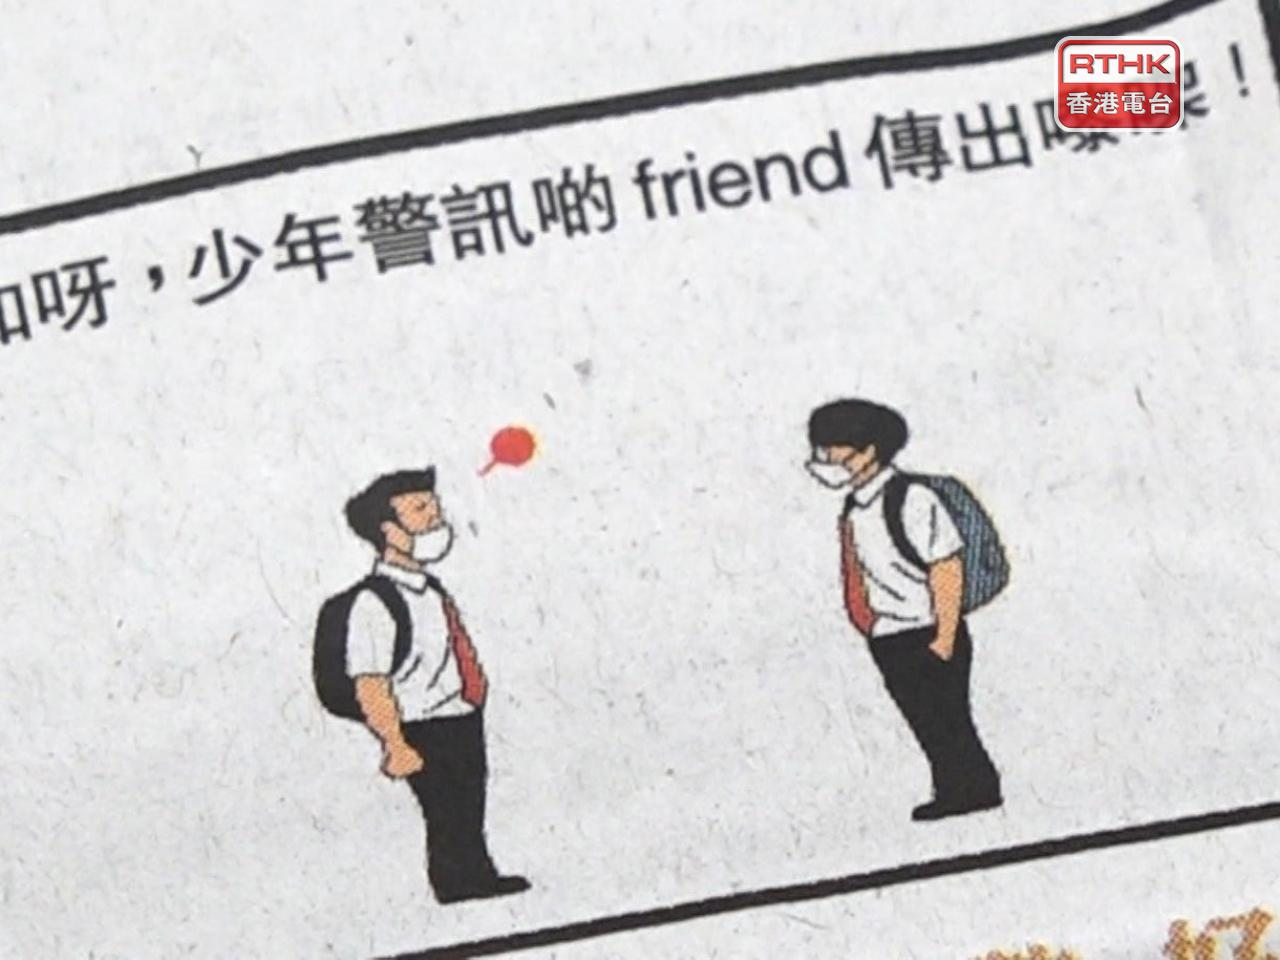 The cartoon has been published in the Mingpao newspaper. Photo: RTHK